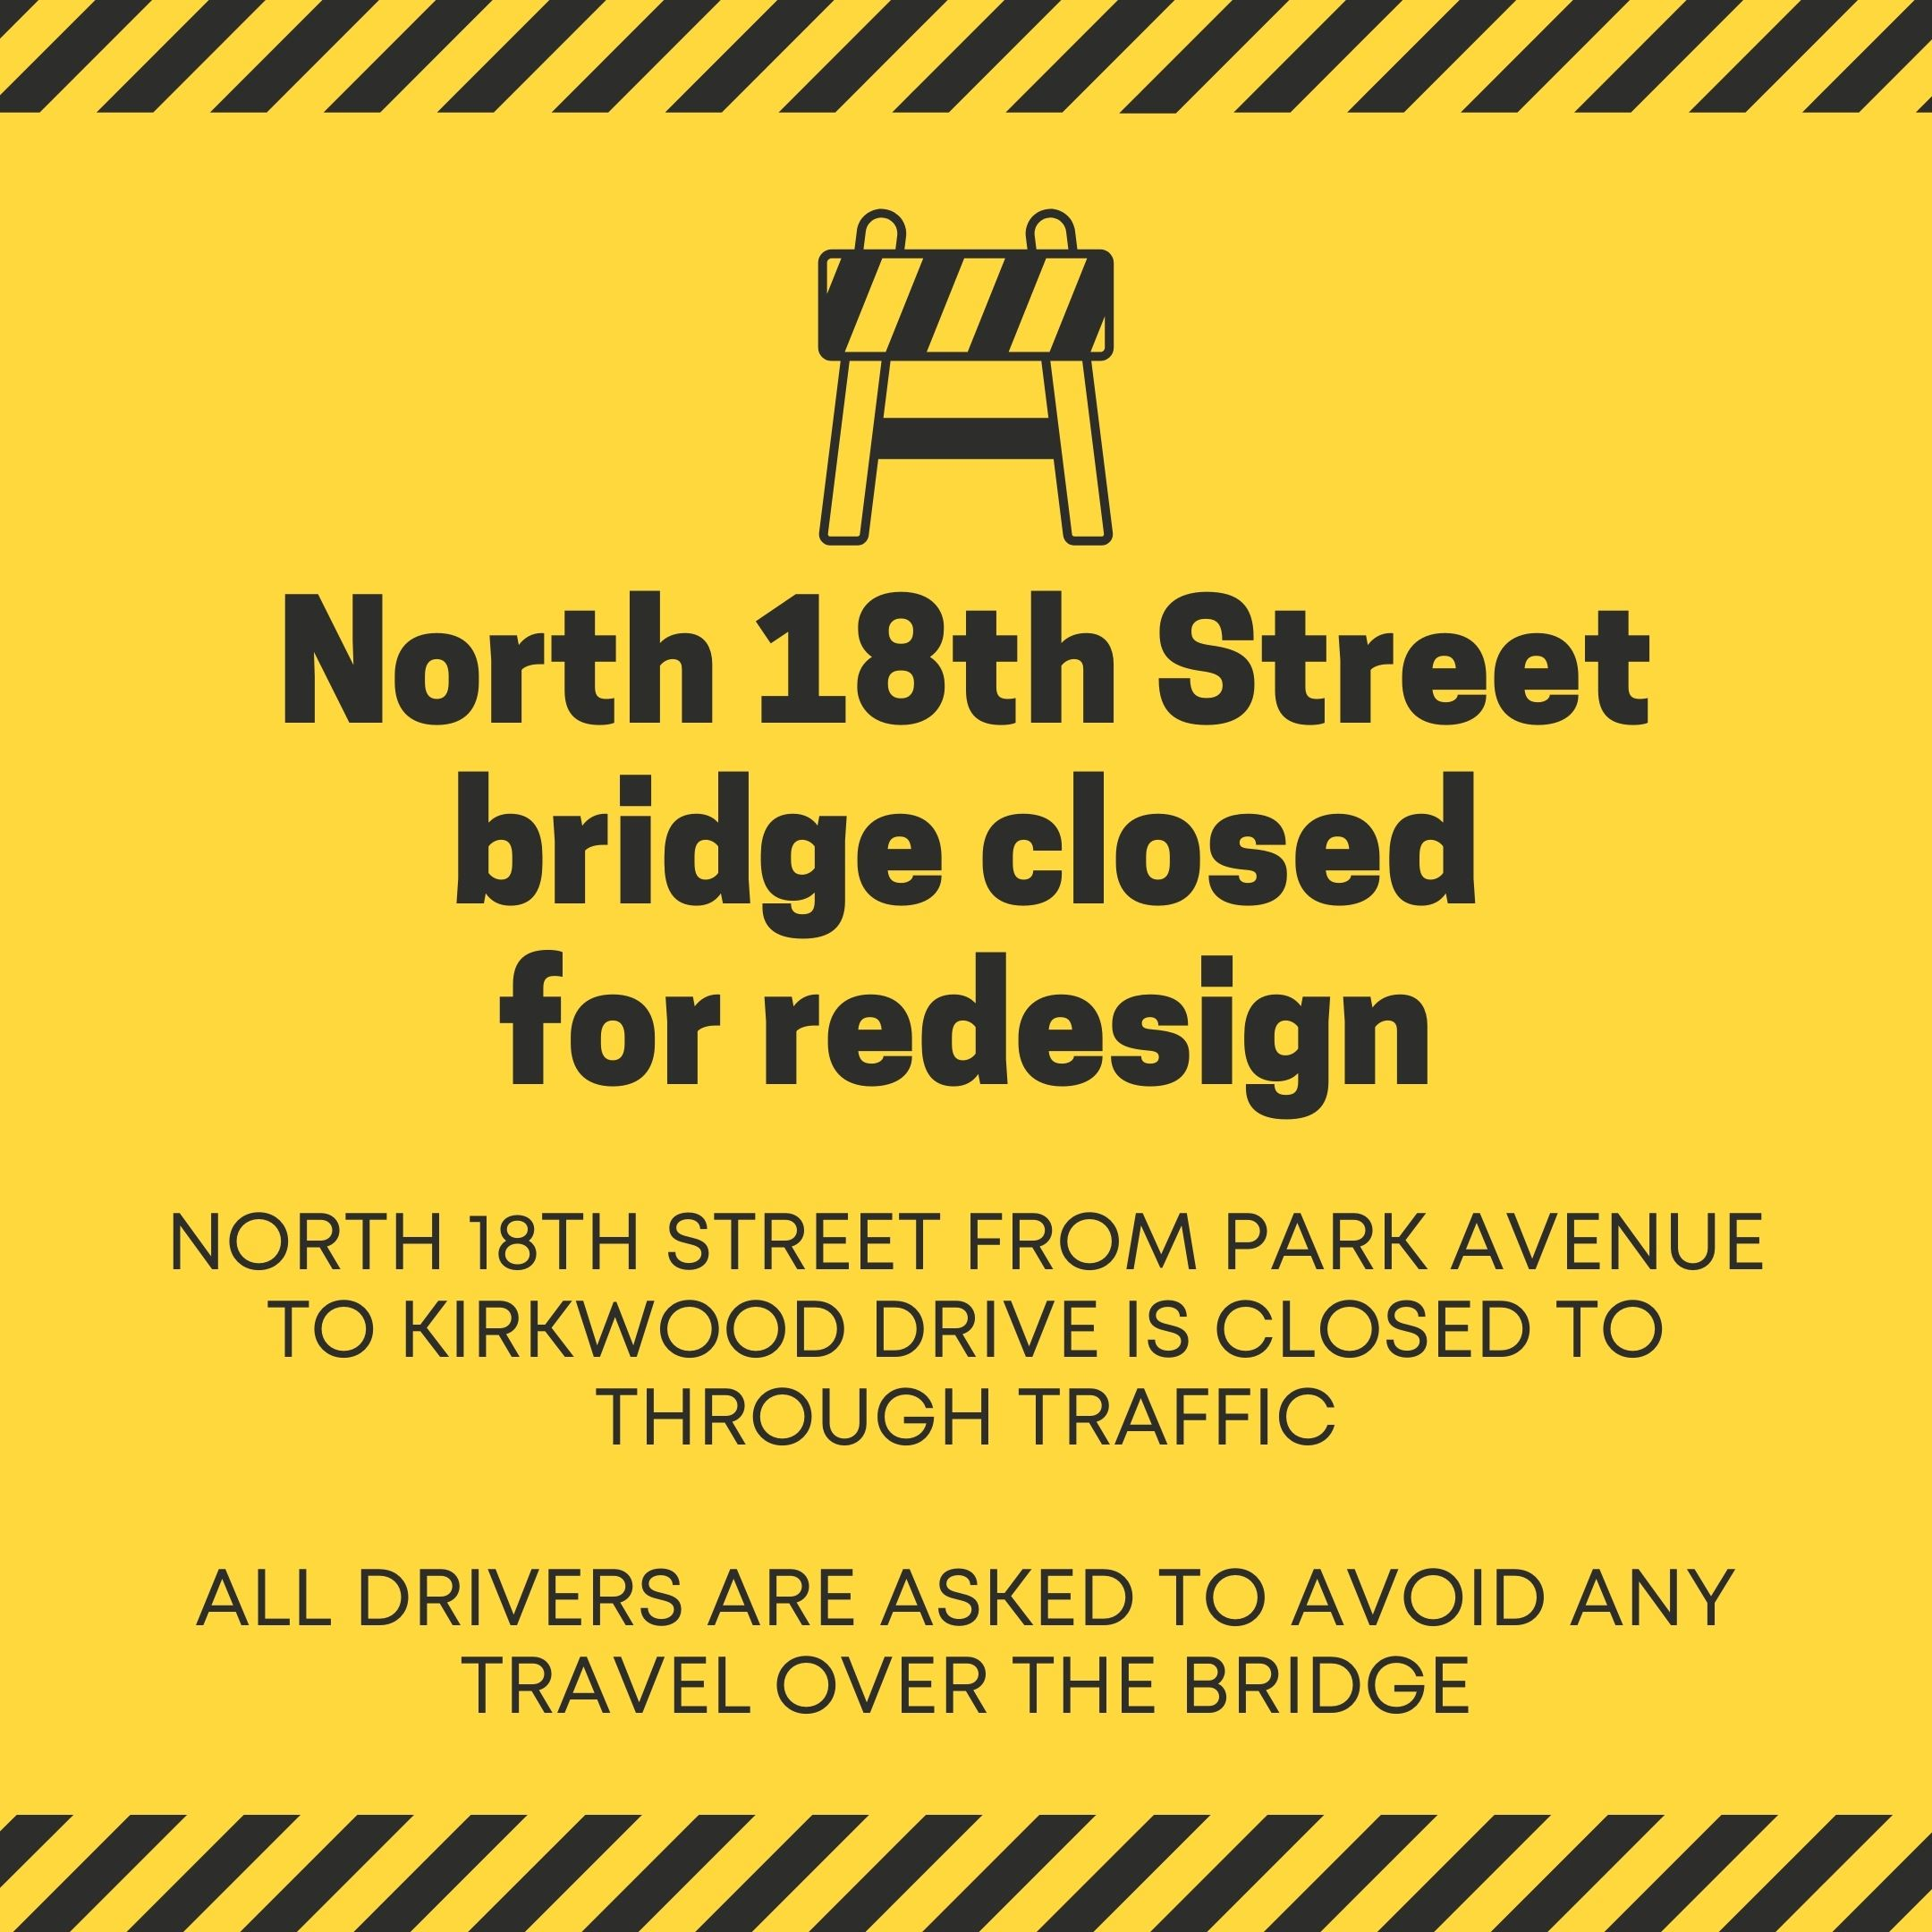 North 18 bridge closed for redesign